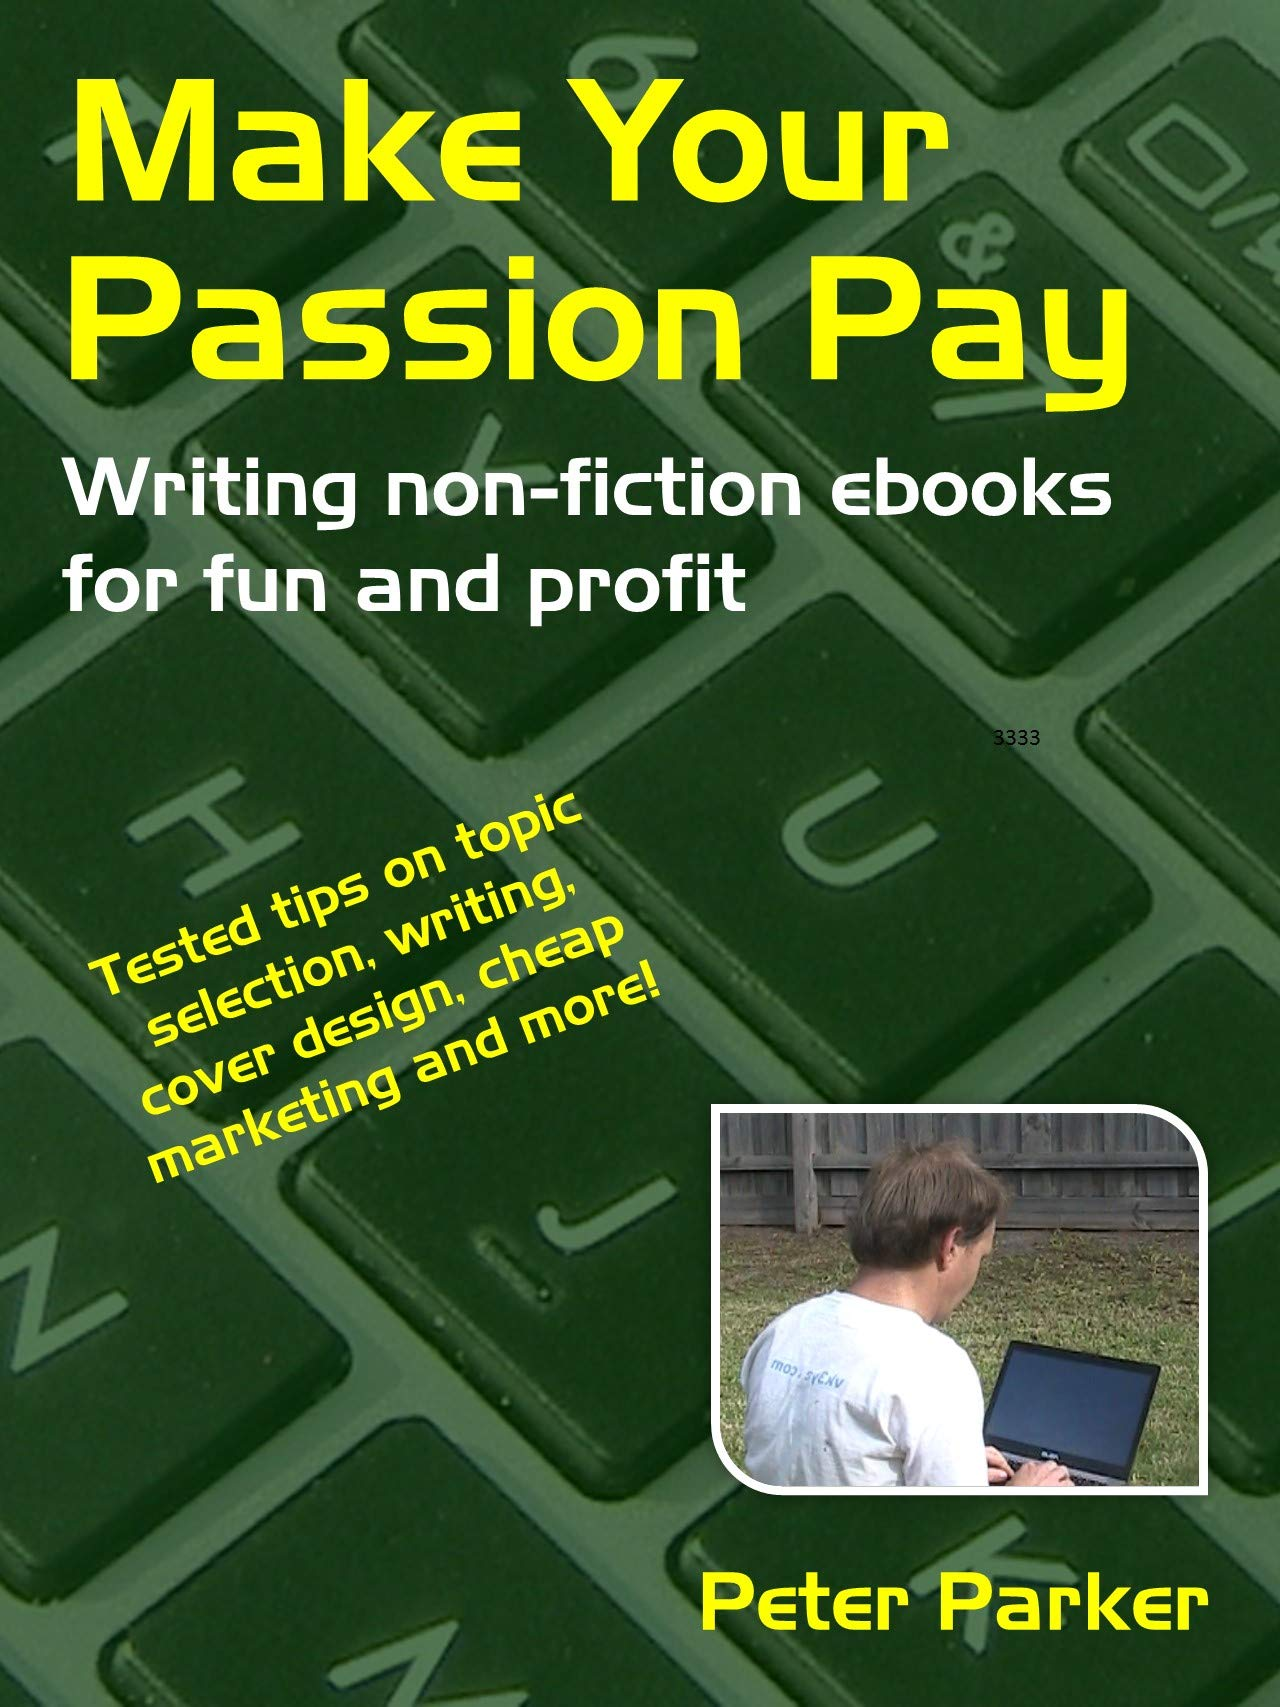 Make Your Passion Pay: Writing non-fiction ebooks for fun and profit